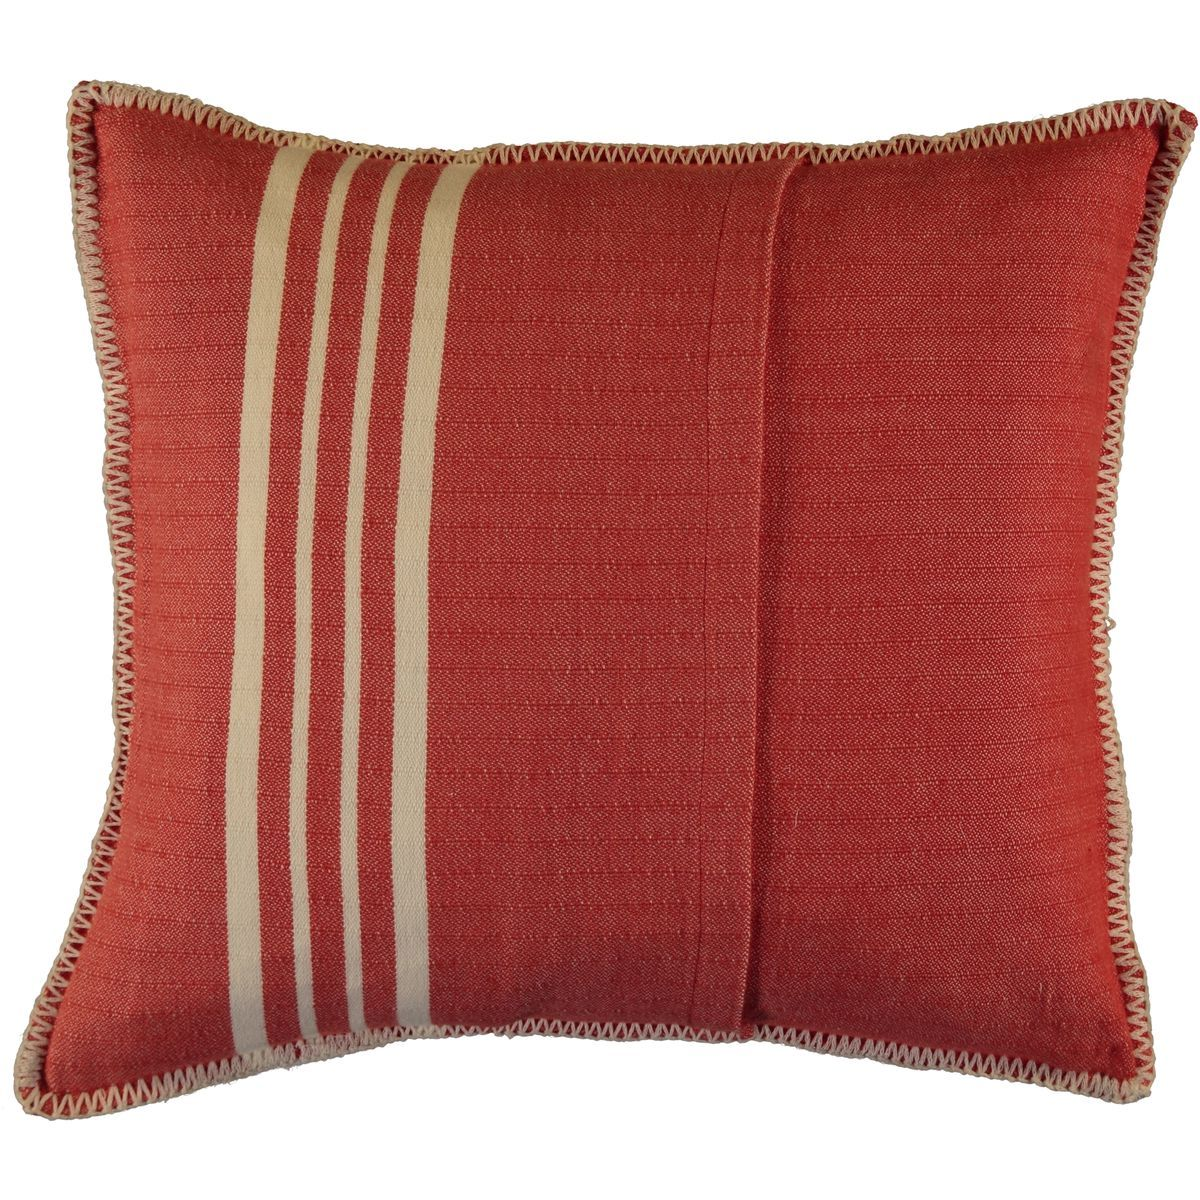 Cushion Cover Sultan - Red / 45x45